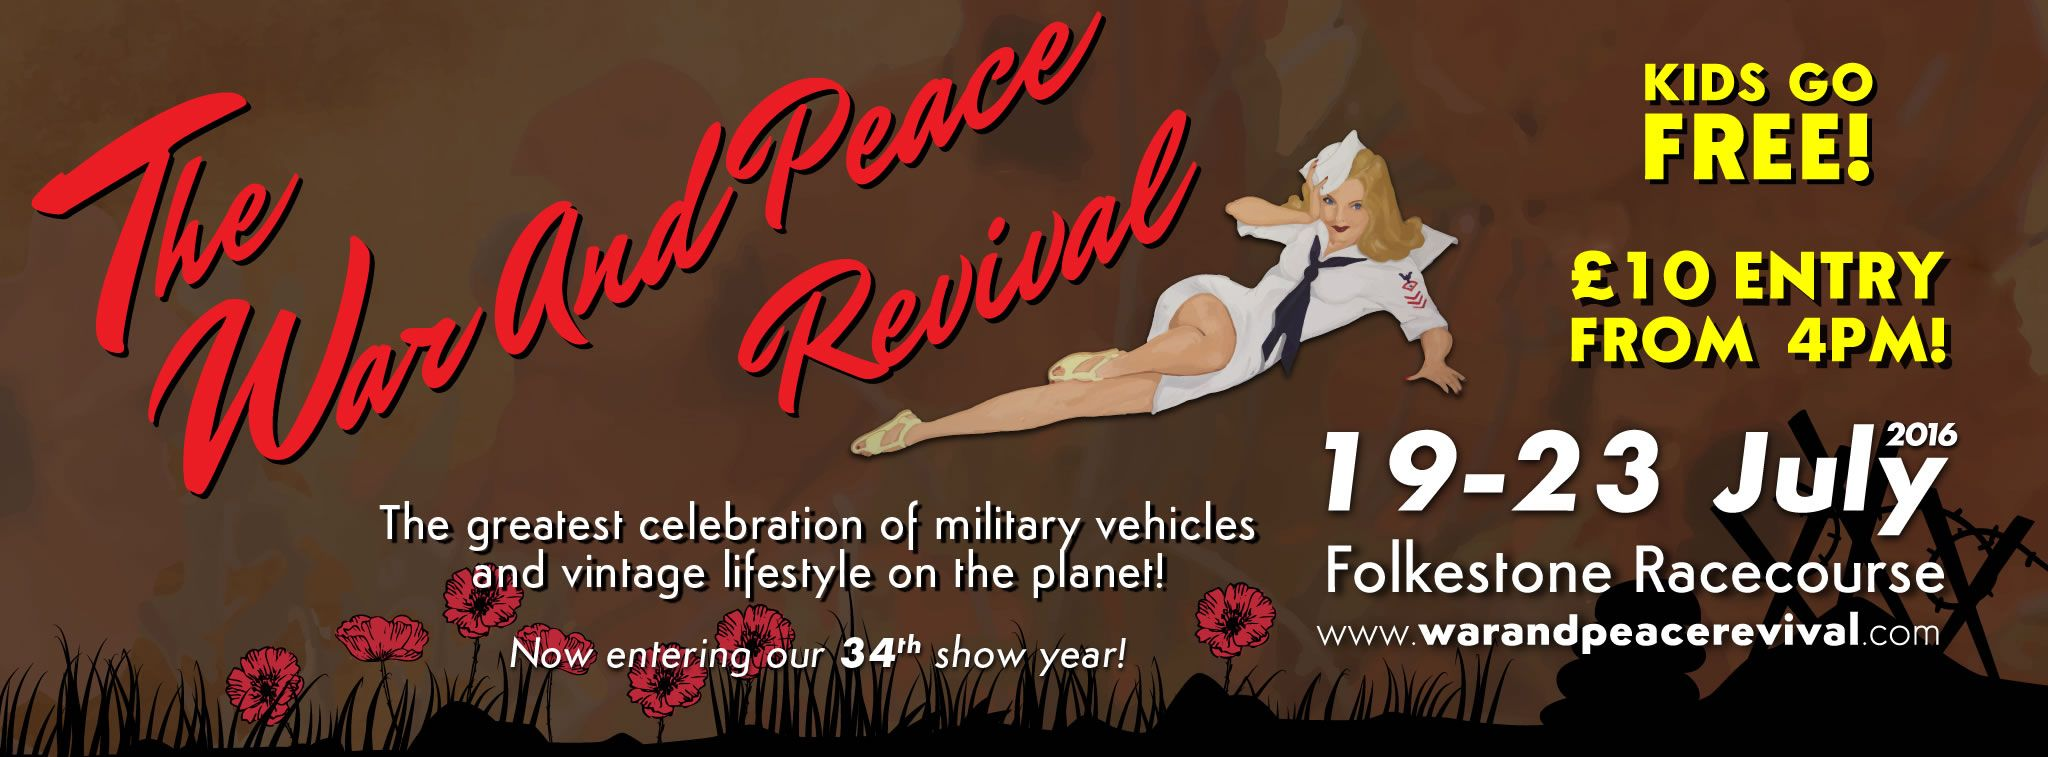 The War and Peace Revival, The Largest Military Vehicle and Vintage gathering.